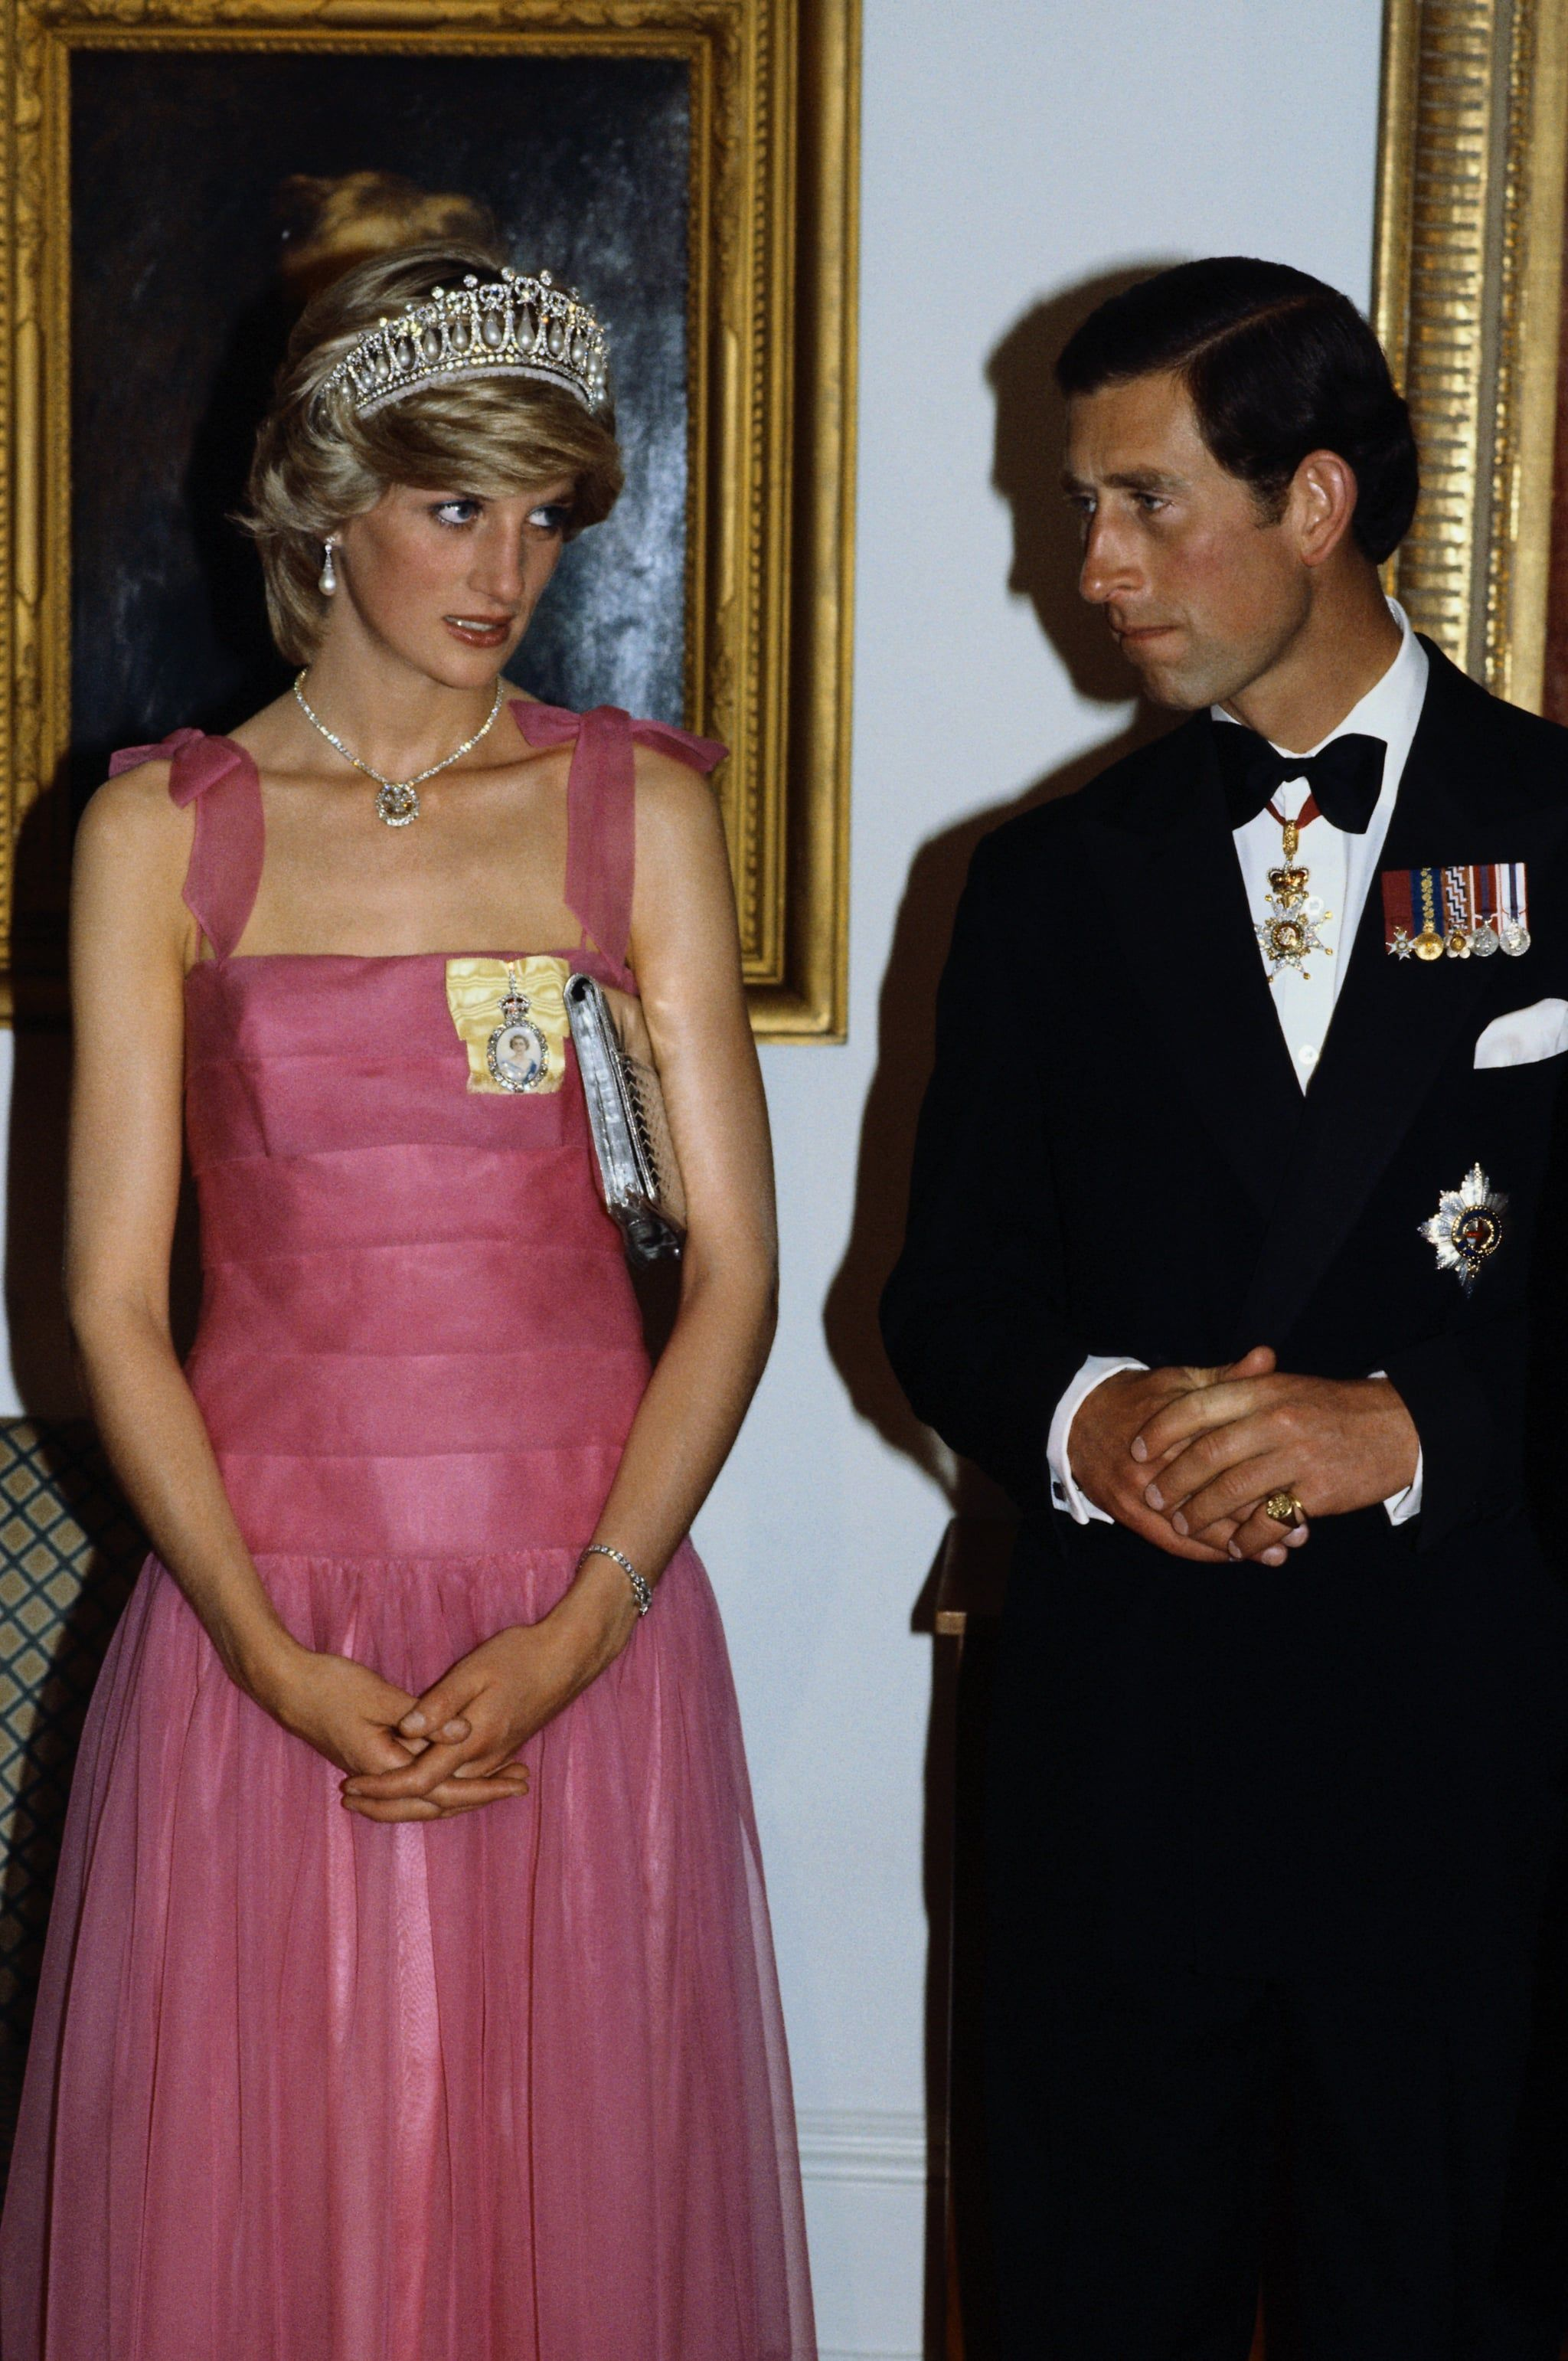 44 snaps of prince charles and princess diana you might not have seen before princess diana fashion princess diana princes diana prince charles and princess diana